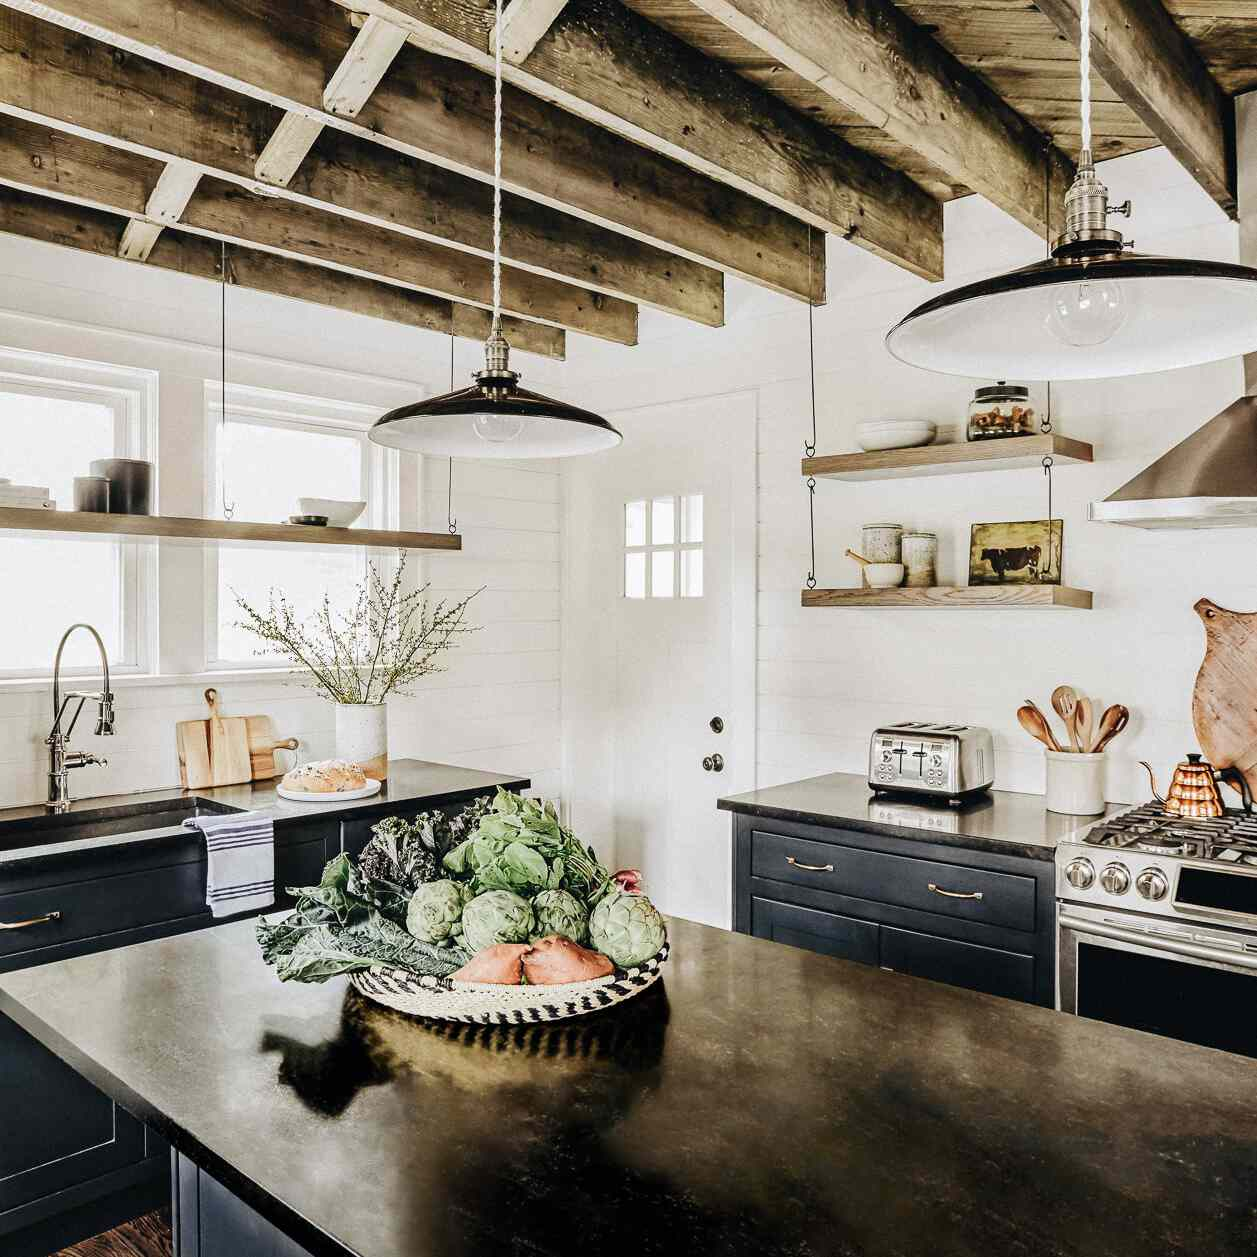 Rustic cottage kitchen with wood ceiling